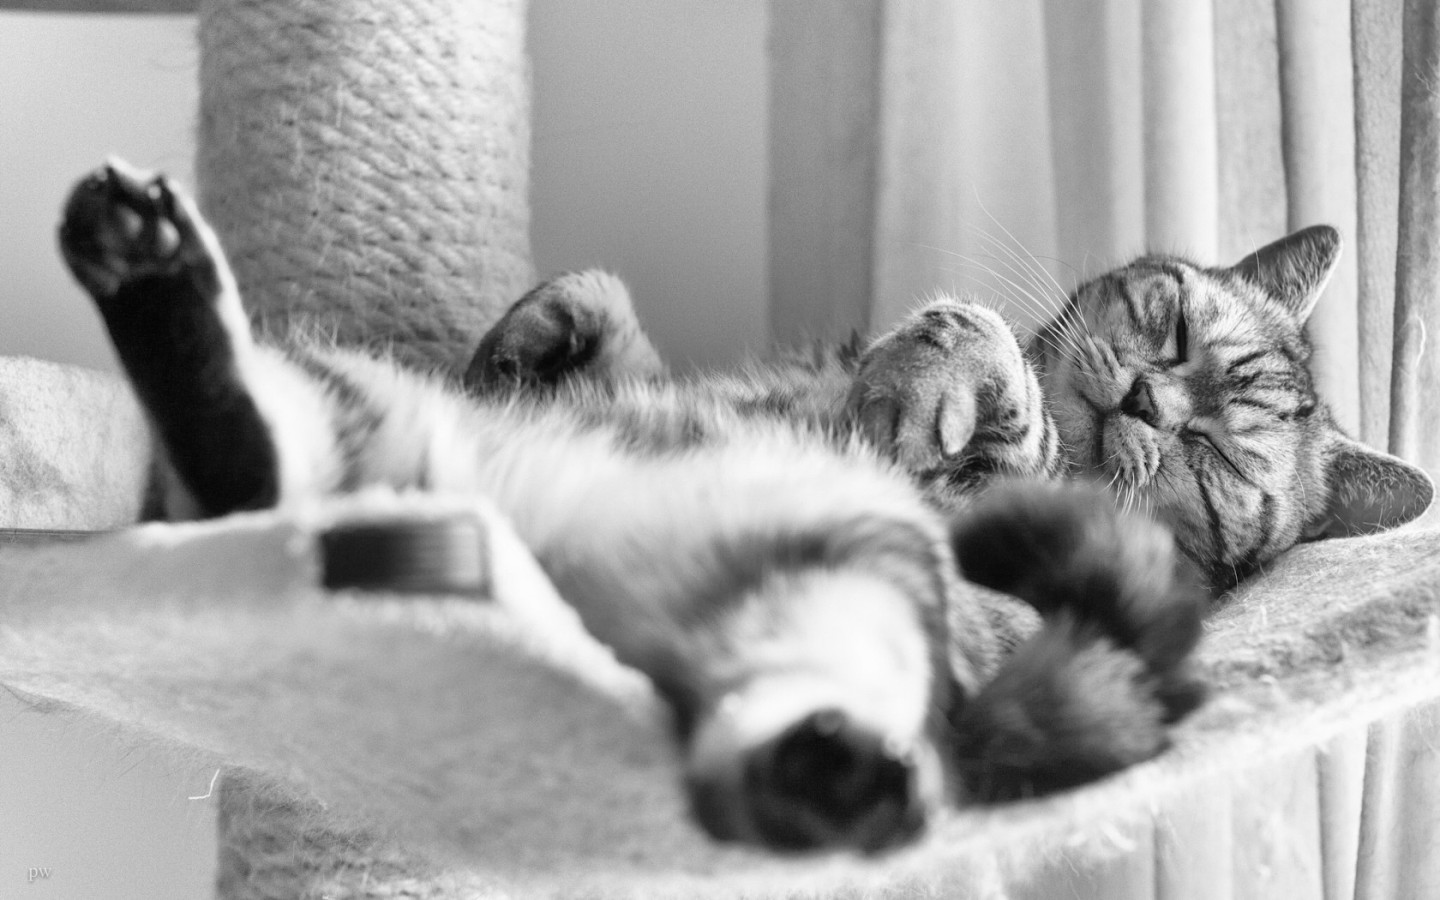 cat-sleeping-in-a-funny-position-cute-lazy-british-shorthair-1440x900-wide-wallpapers_net.jpg